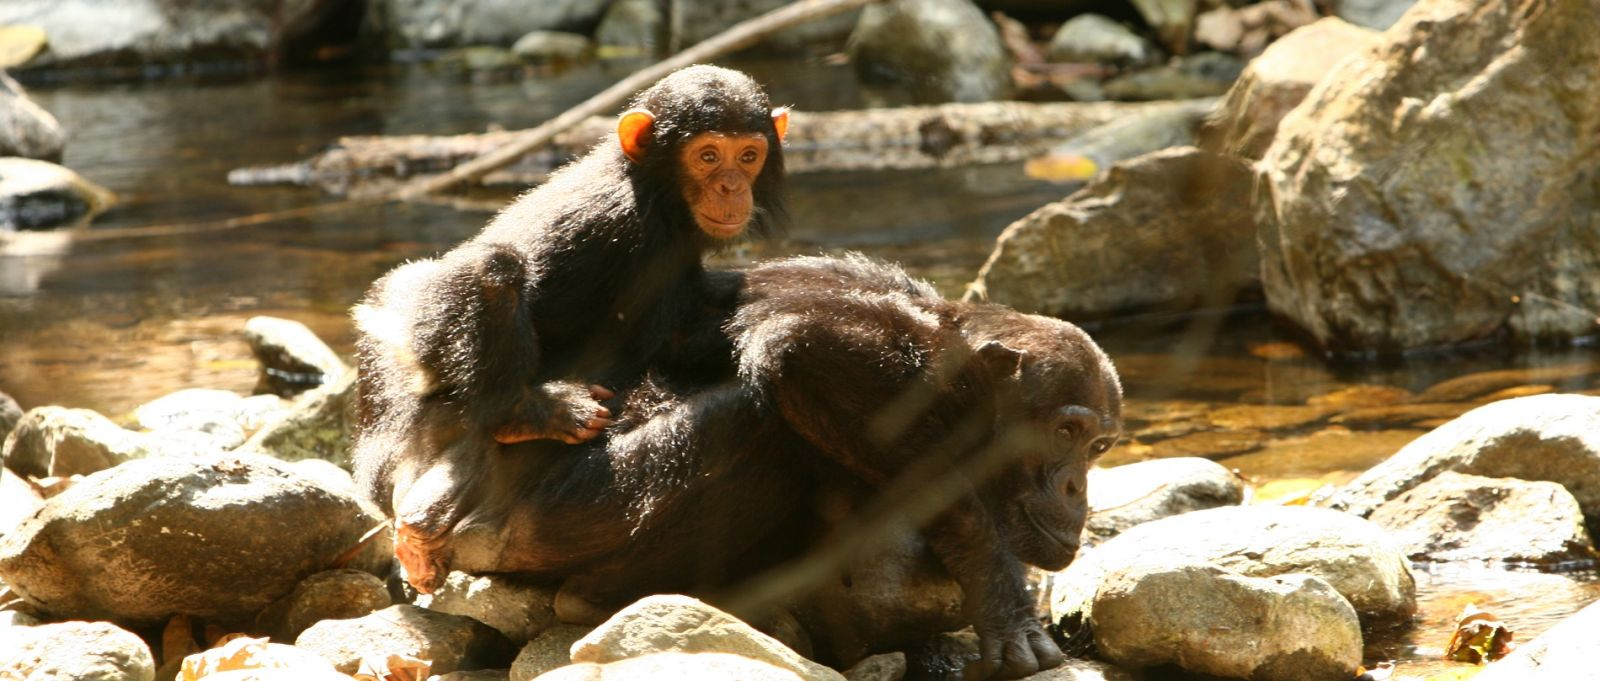 Chimps at Gombe National Park in Tanzania